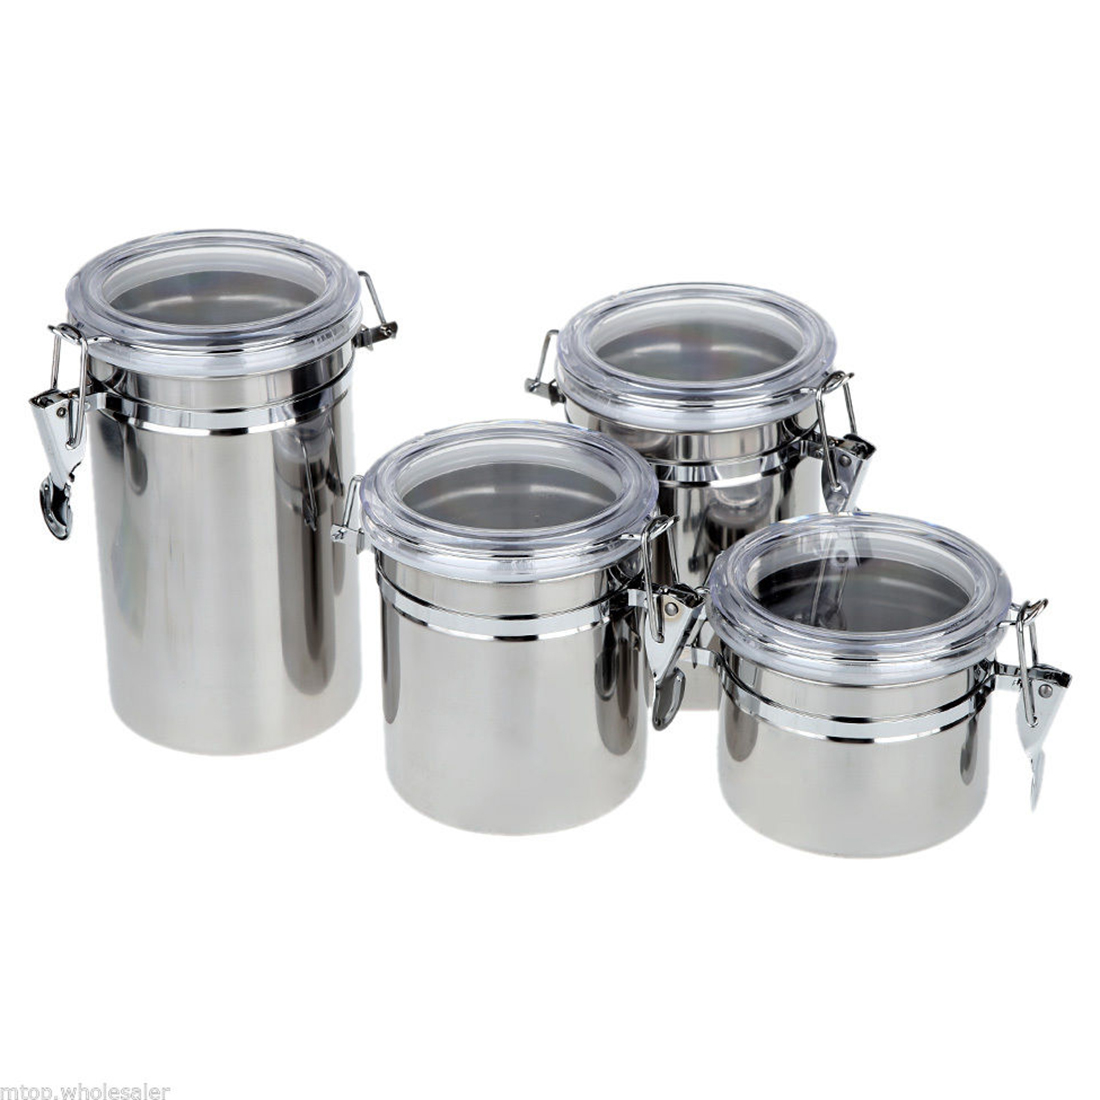 4pcs Stainless Steel Canister Spice Storage Jar Set Kitchen Cans Pots Organizer4pcs Stainless Steel Canister Spice Storage Jar Set Kitchen Cans Pots Organizer